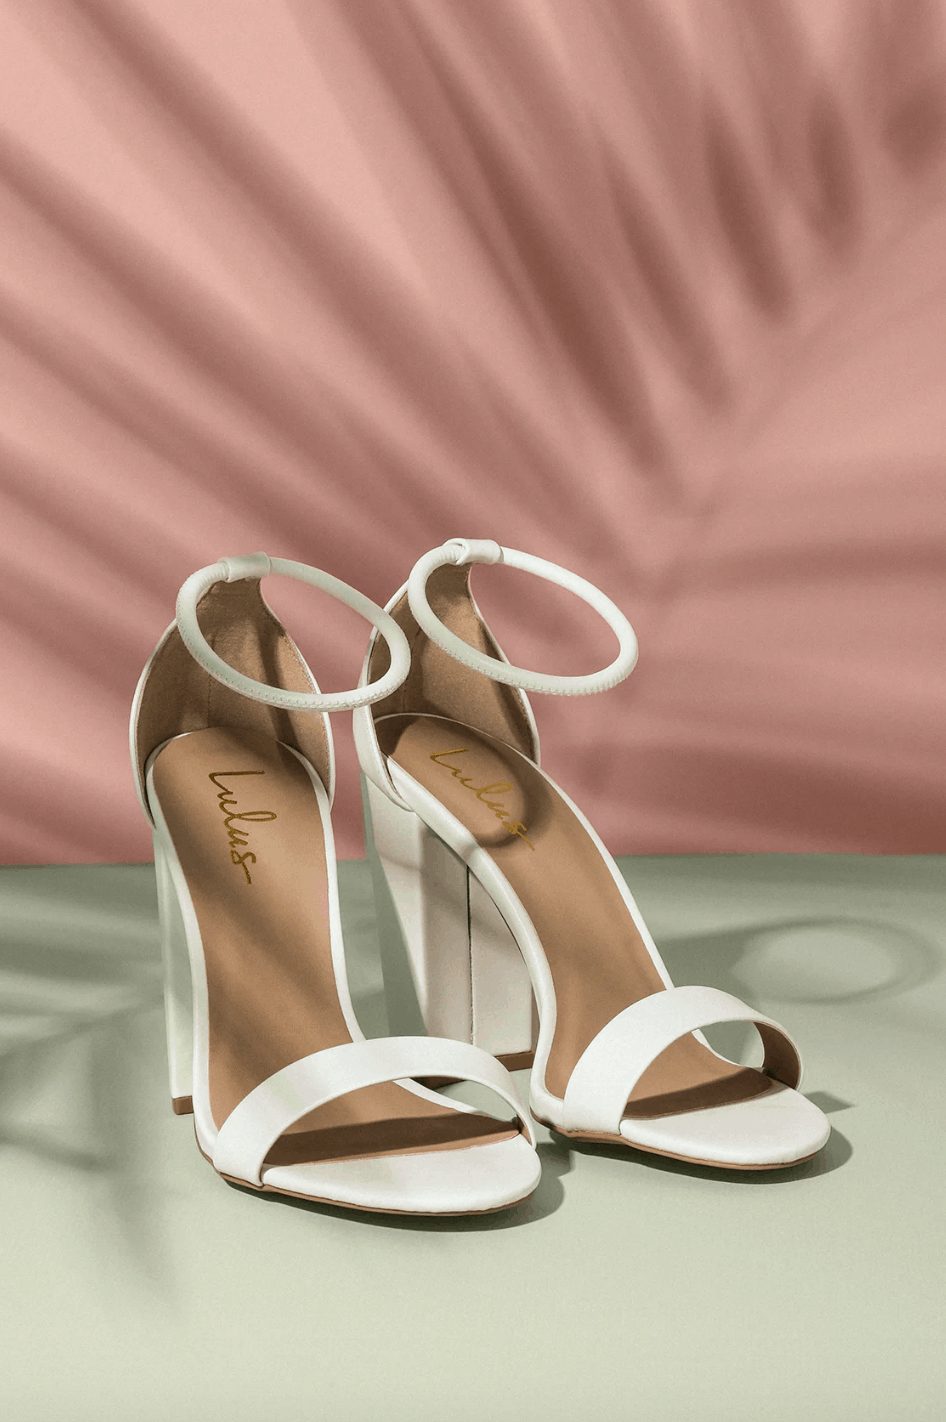 How to Wear White Heels This Summer